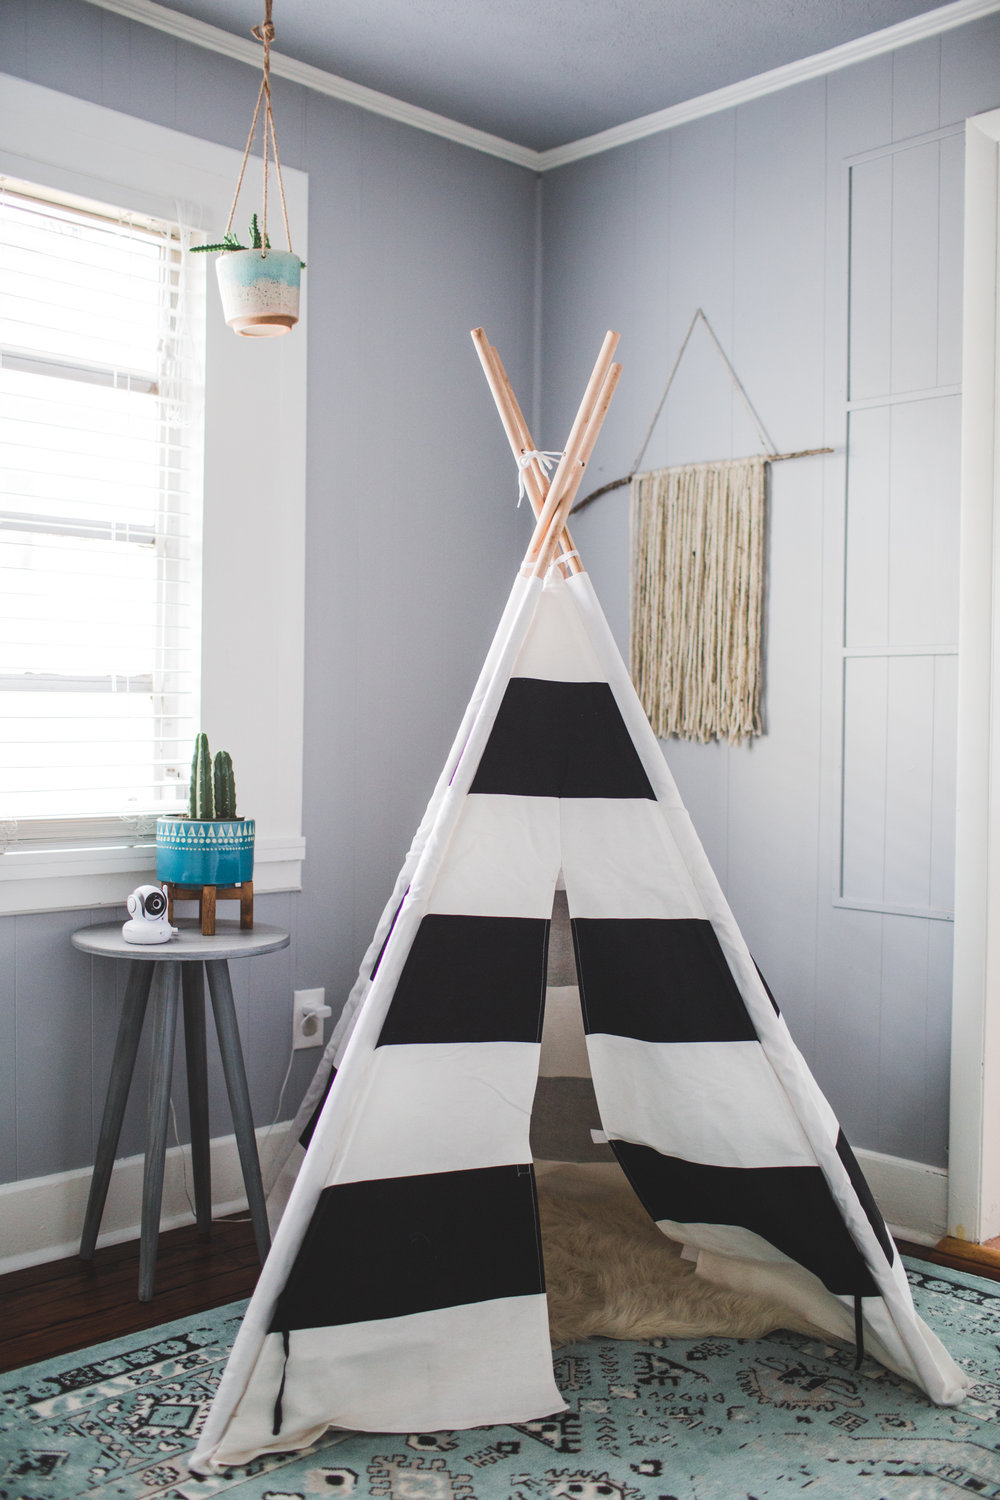 childs bedroom teepee